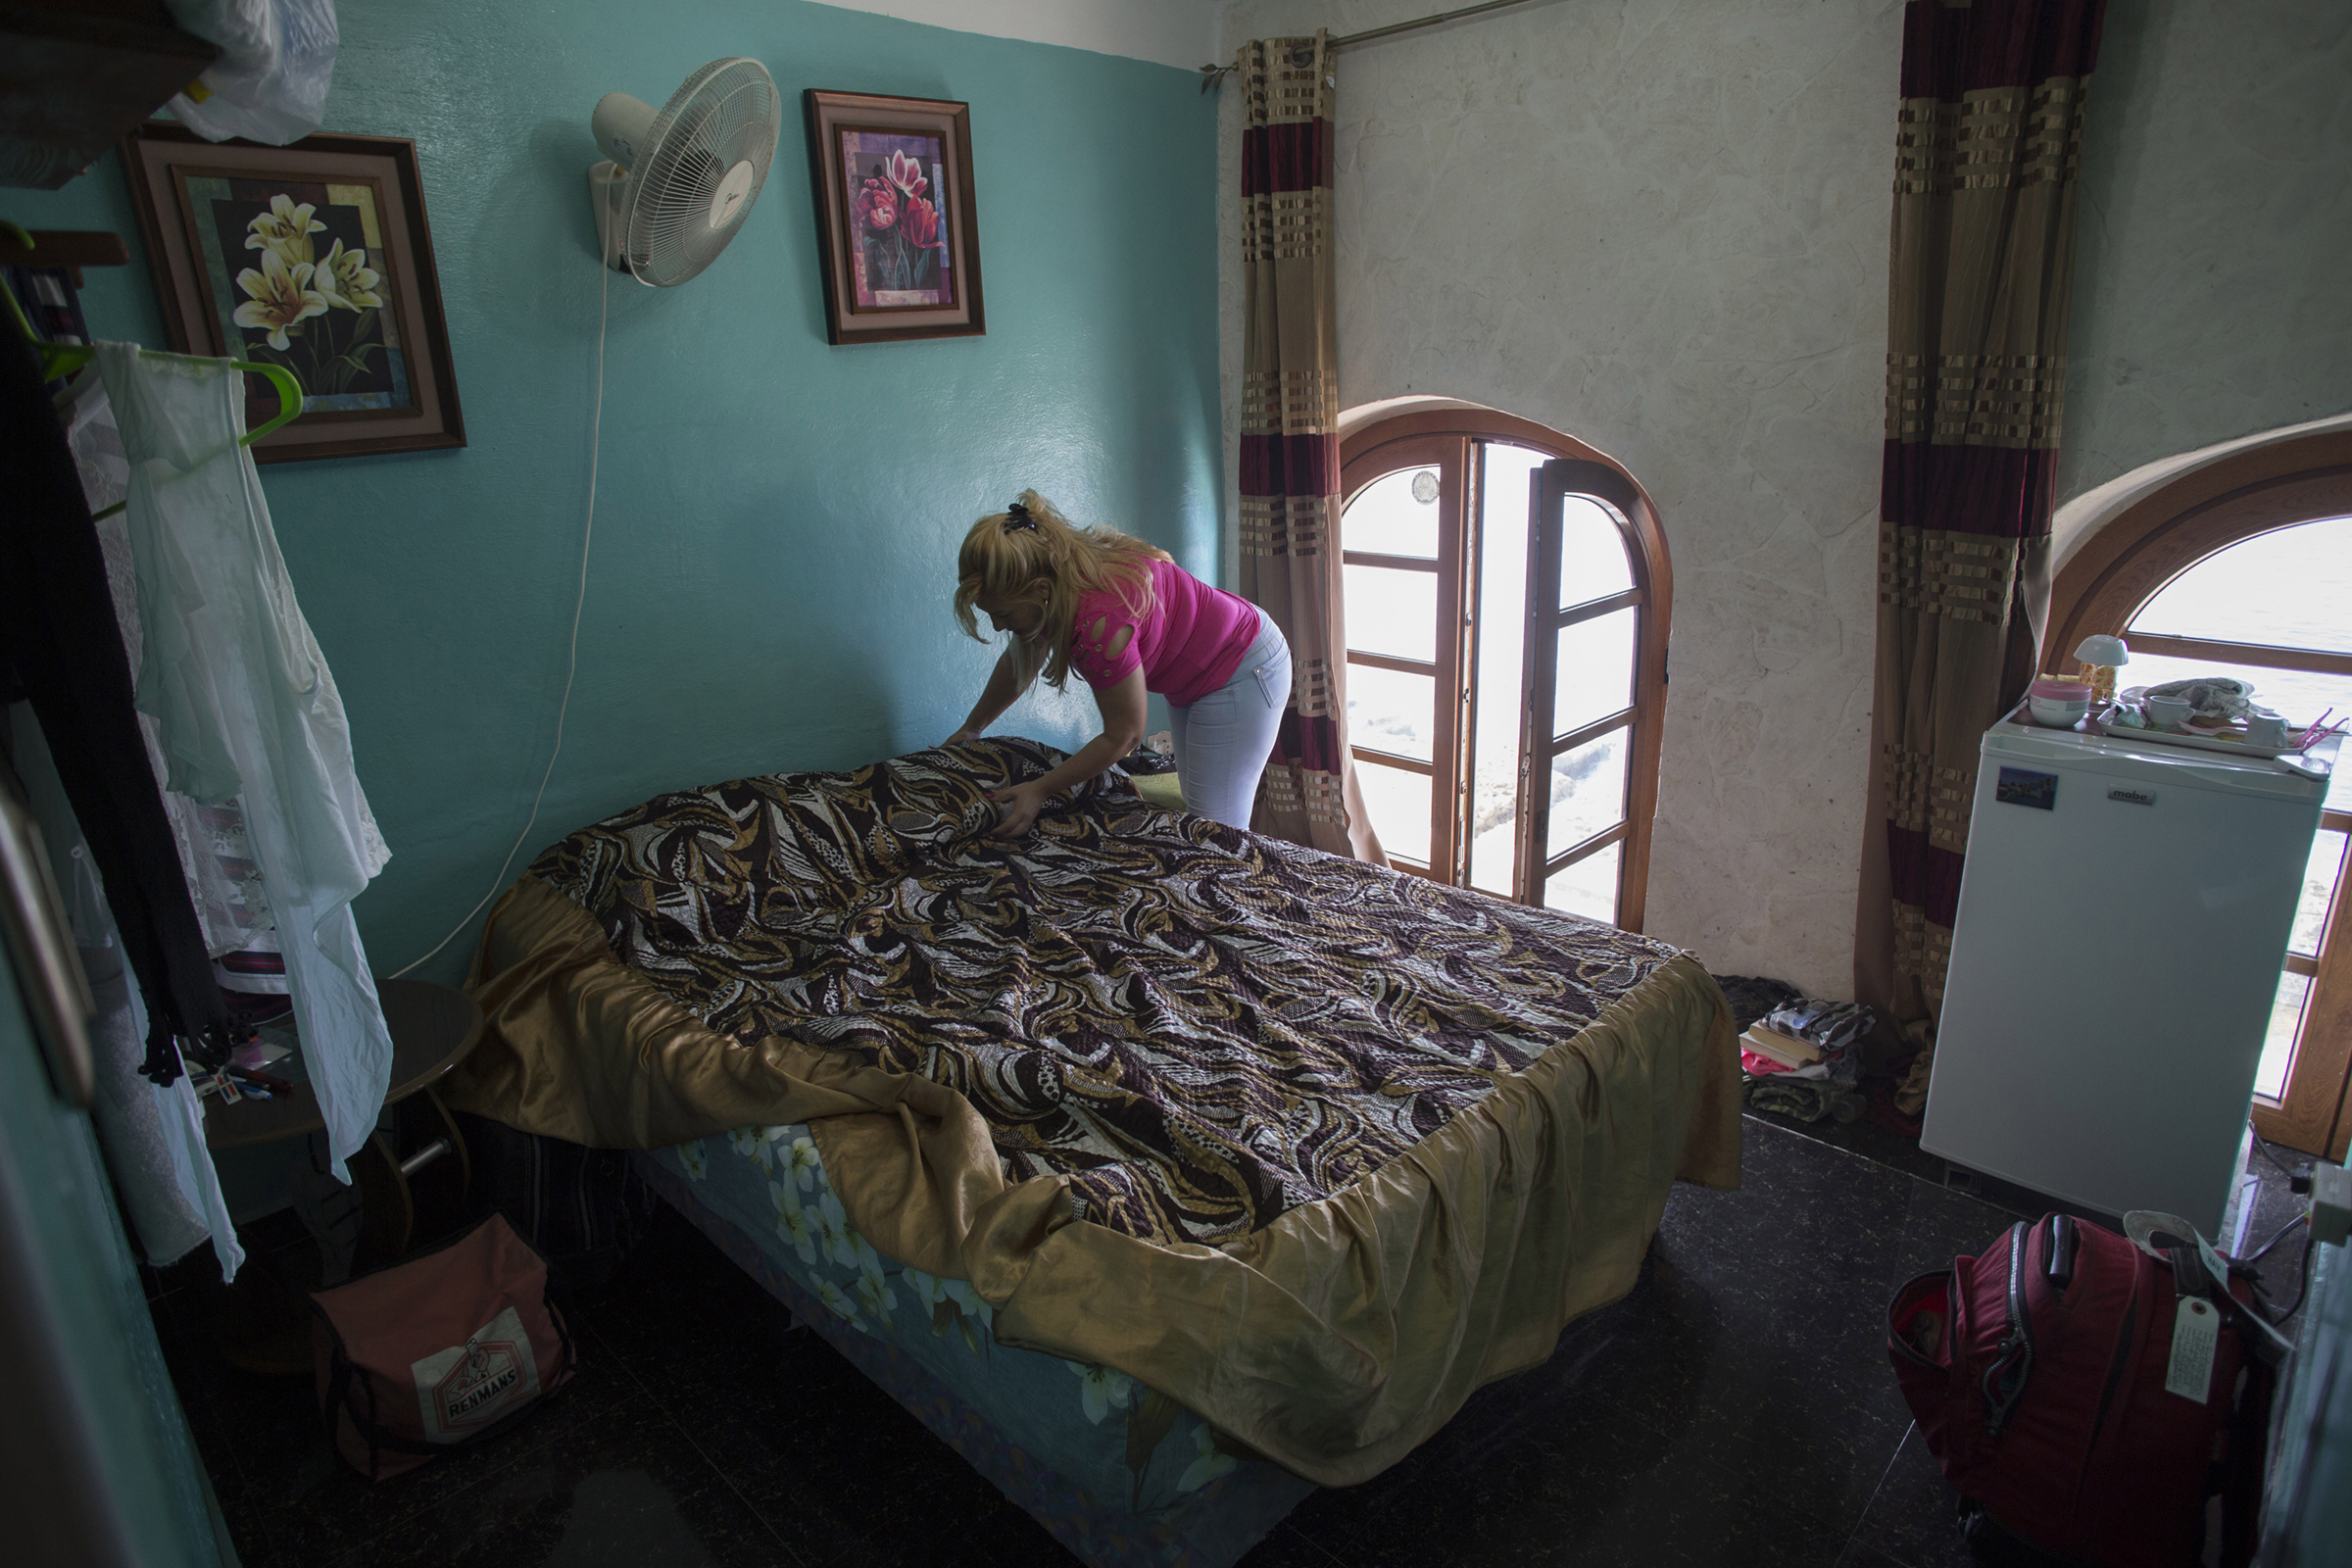 Amarilis Placensia makes a bed at a home rented to tourists in Havana, on Jan. 11, 2020.